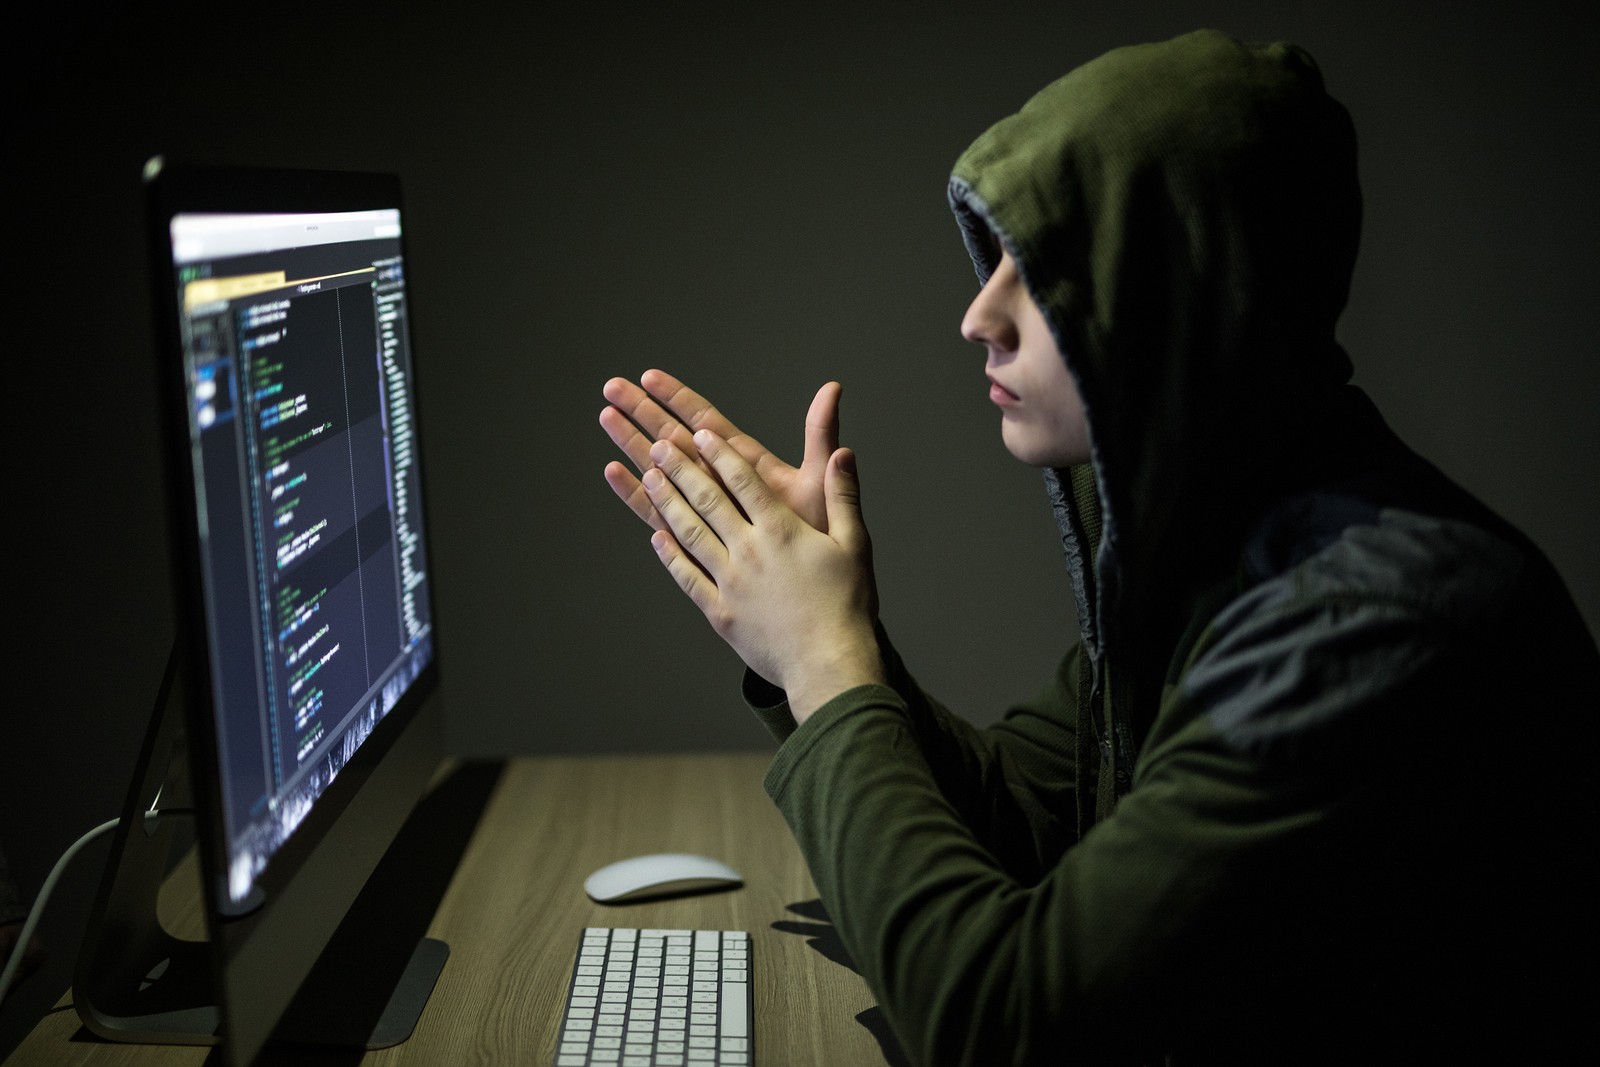 Hacker in glasses breaking code. Criminal hacker penetrating network system from his dark hacker room.